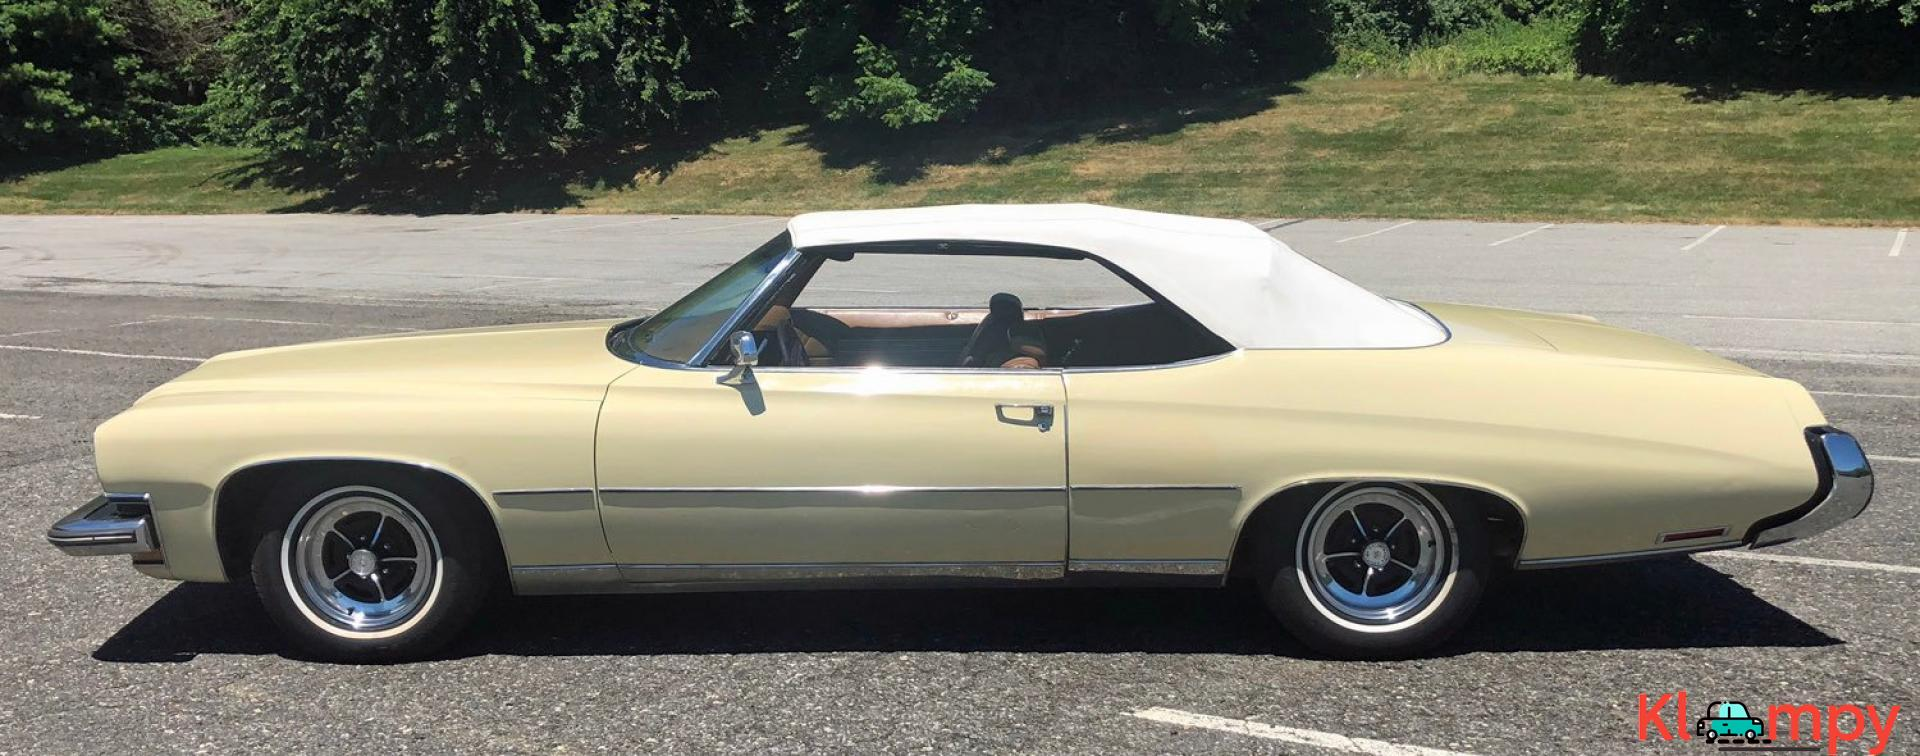 1973 Buick Centurion 350 Convertible V8 - 8/20